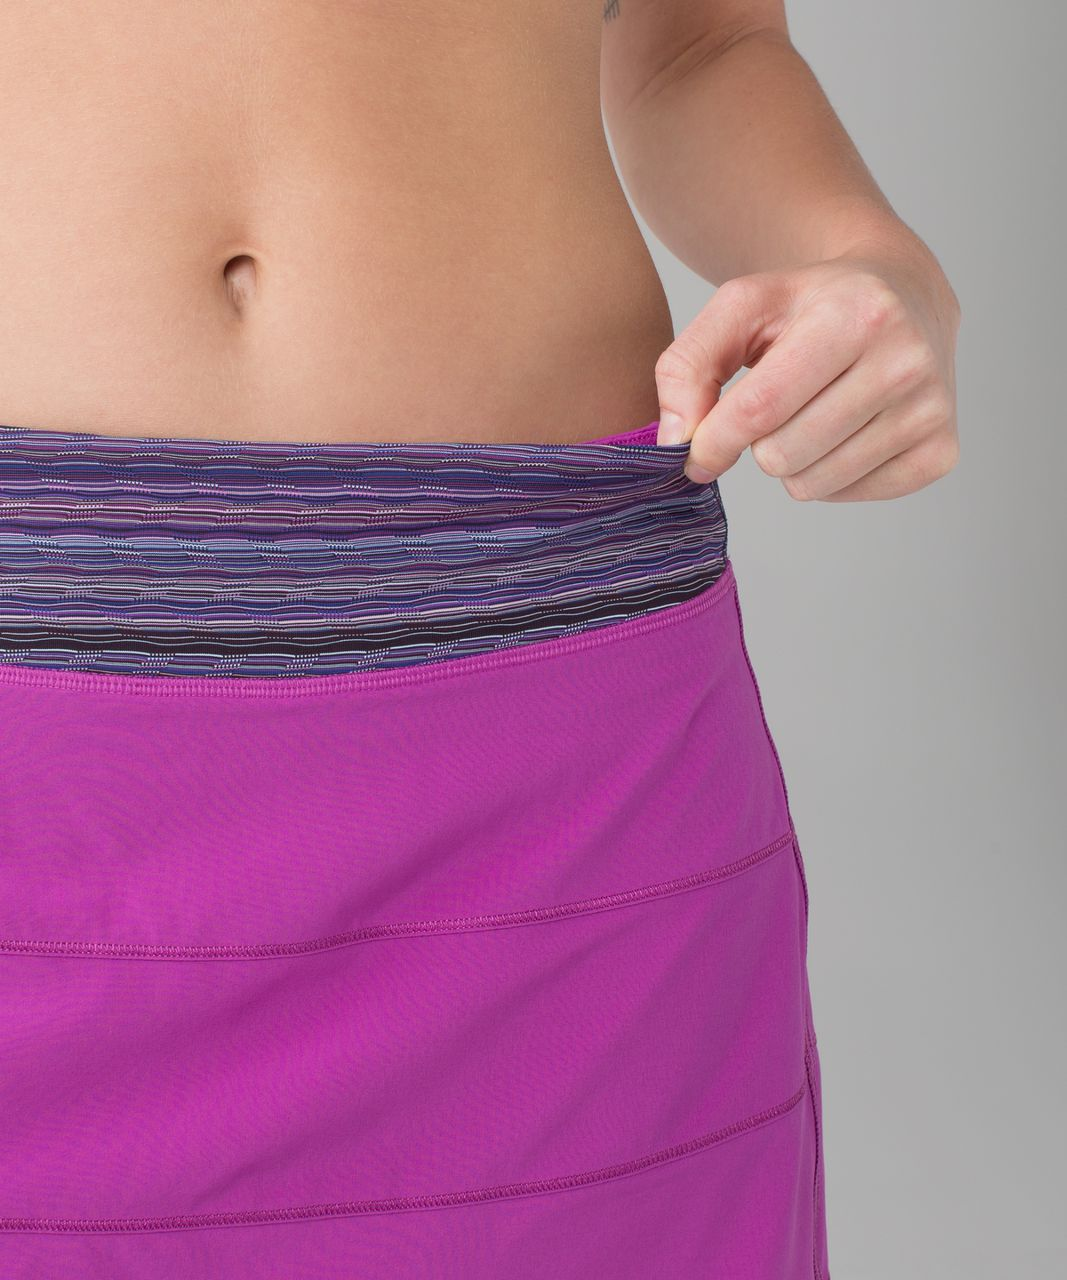 Lululemon Pace Rival Skirt II (Tall) *4-way Stretch - Ultra Violet / Space Dye Twist Ultra Violet Multi